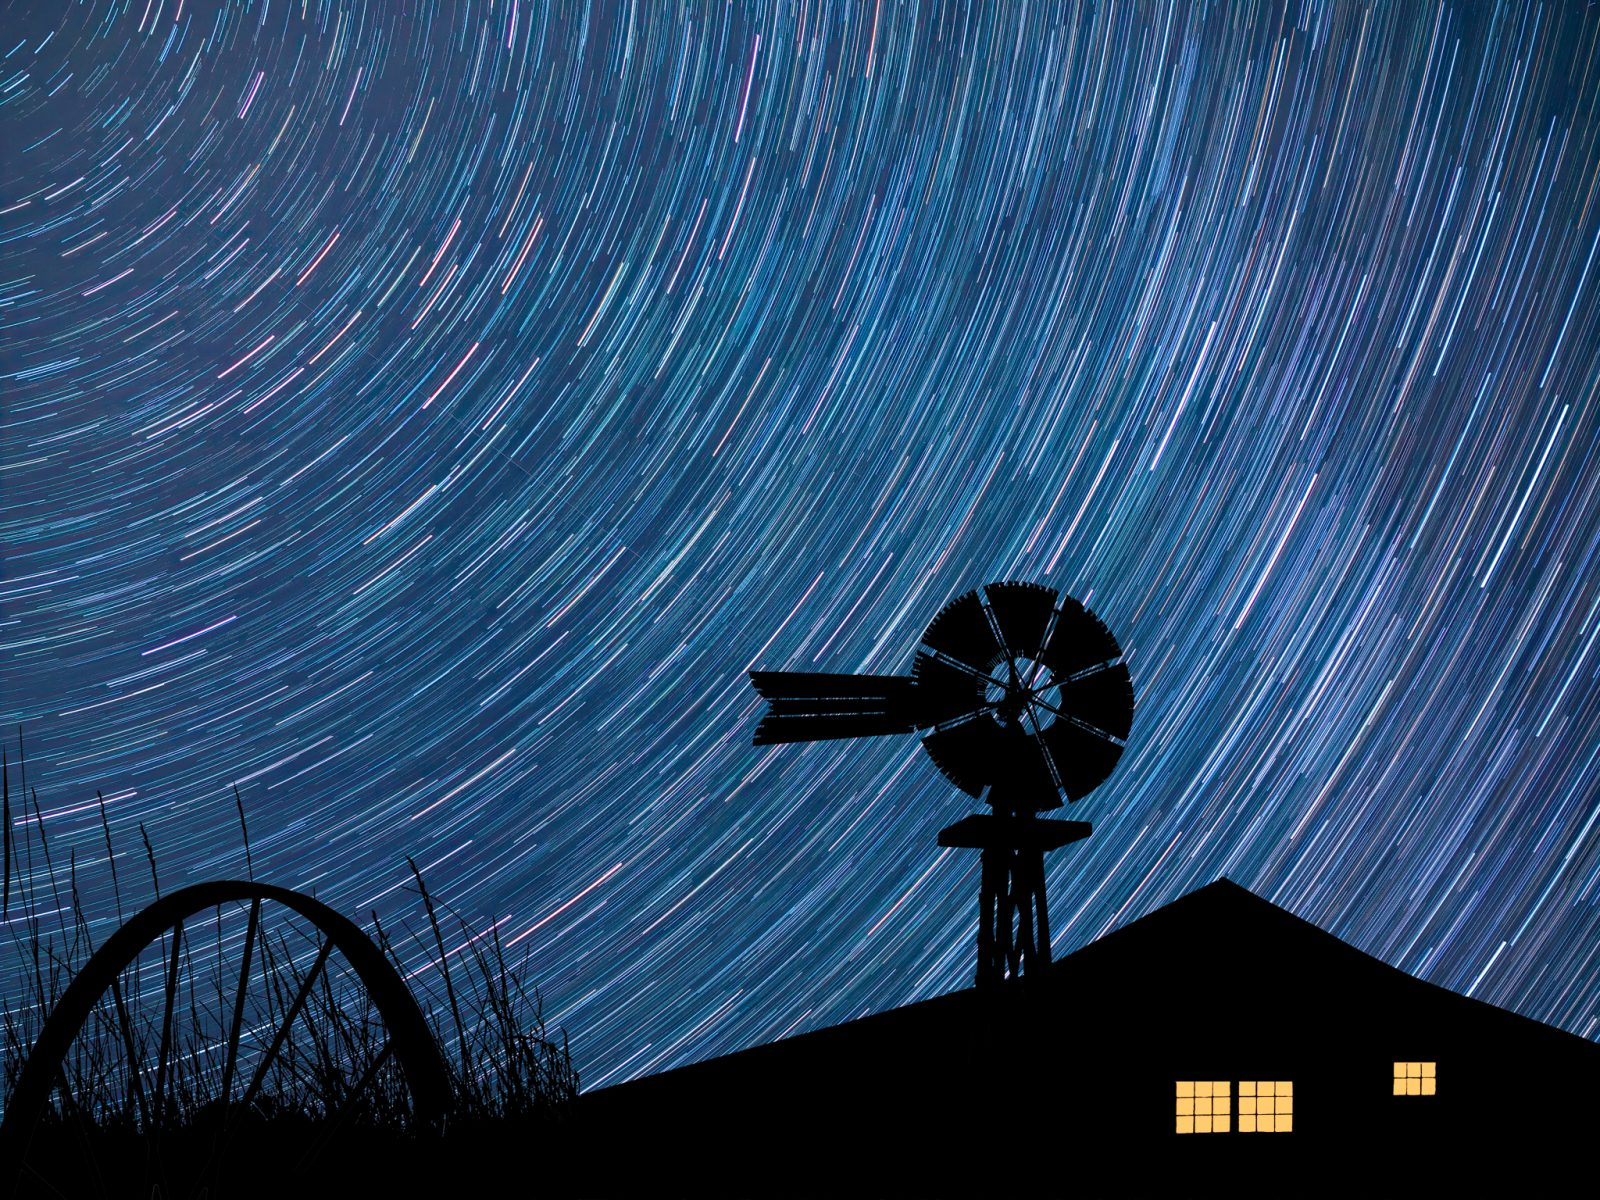 Star Trails over the Farm